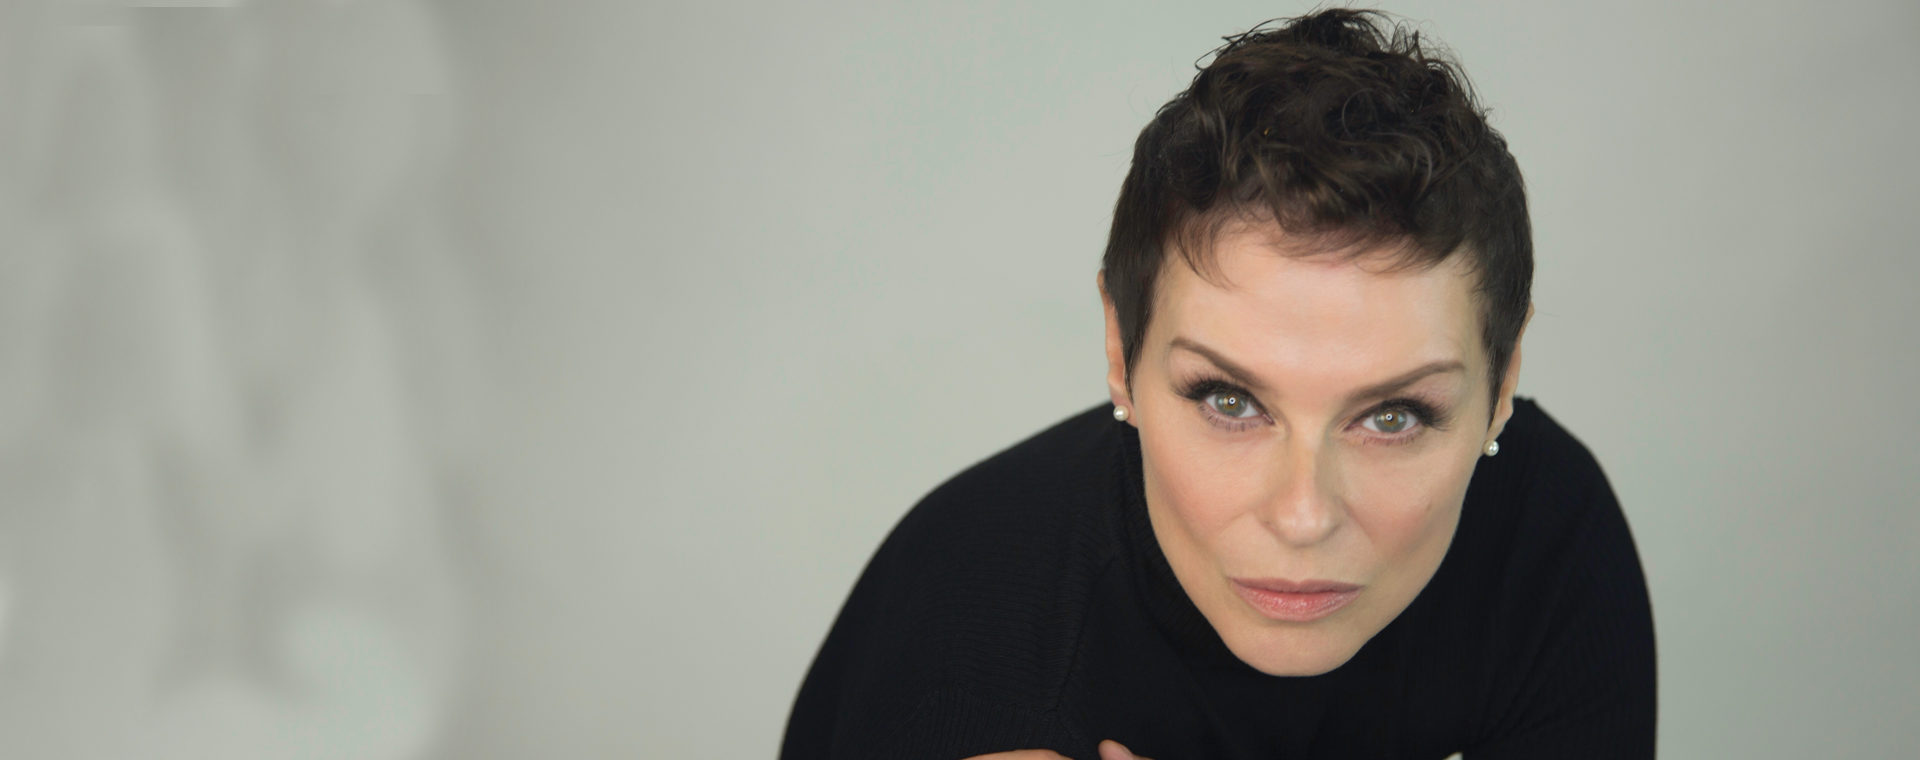 LATEST ISSUE <br><b>Lisa Stansfield</b></br>